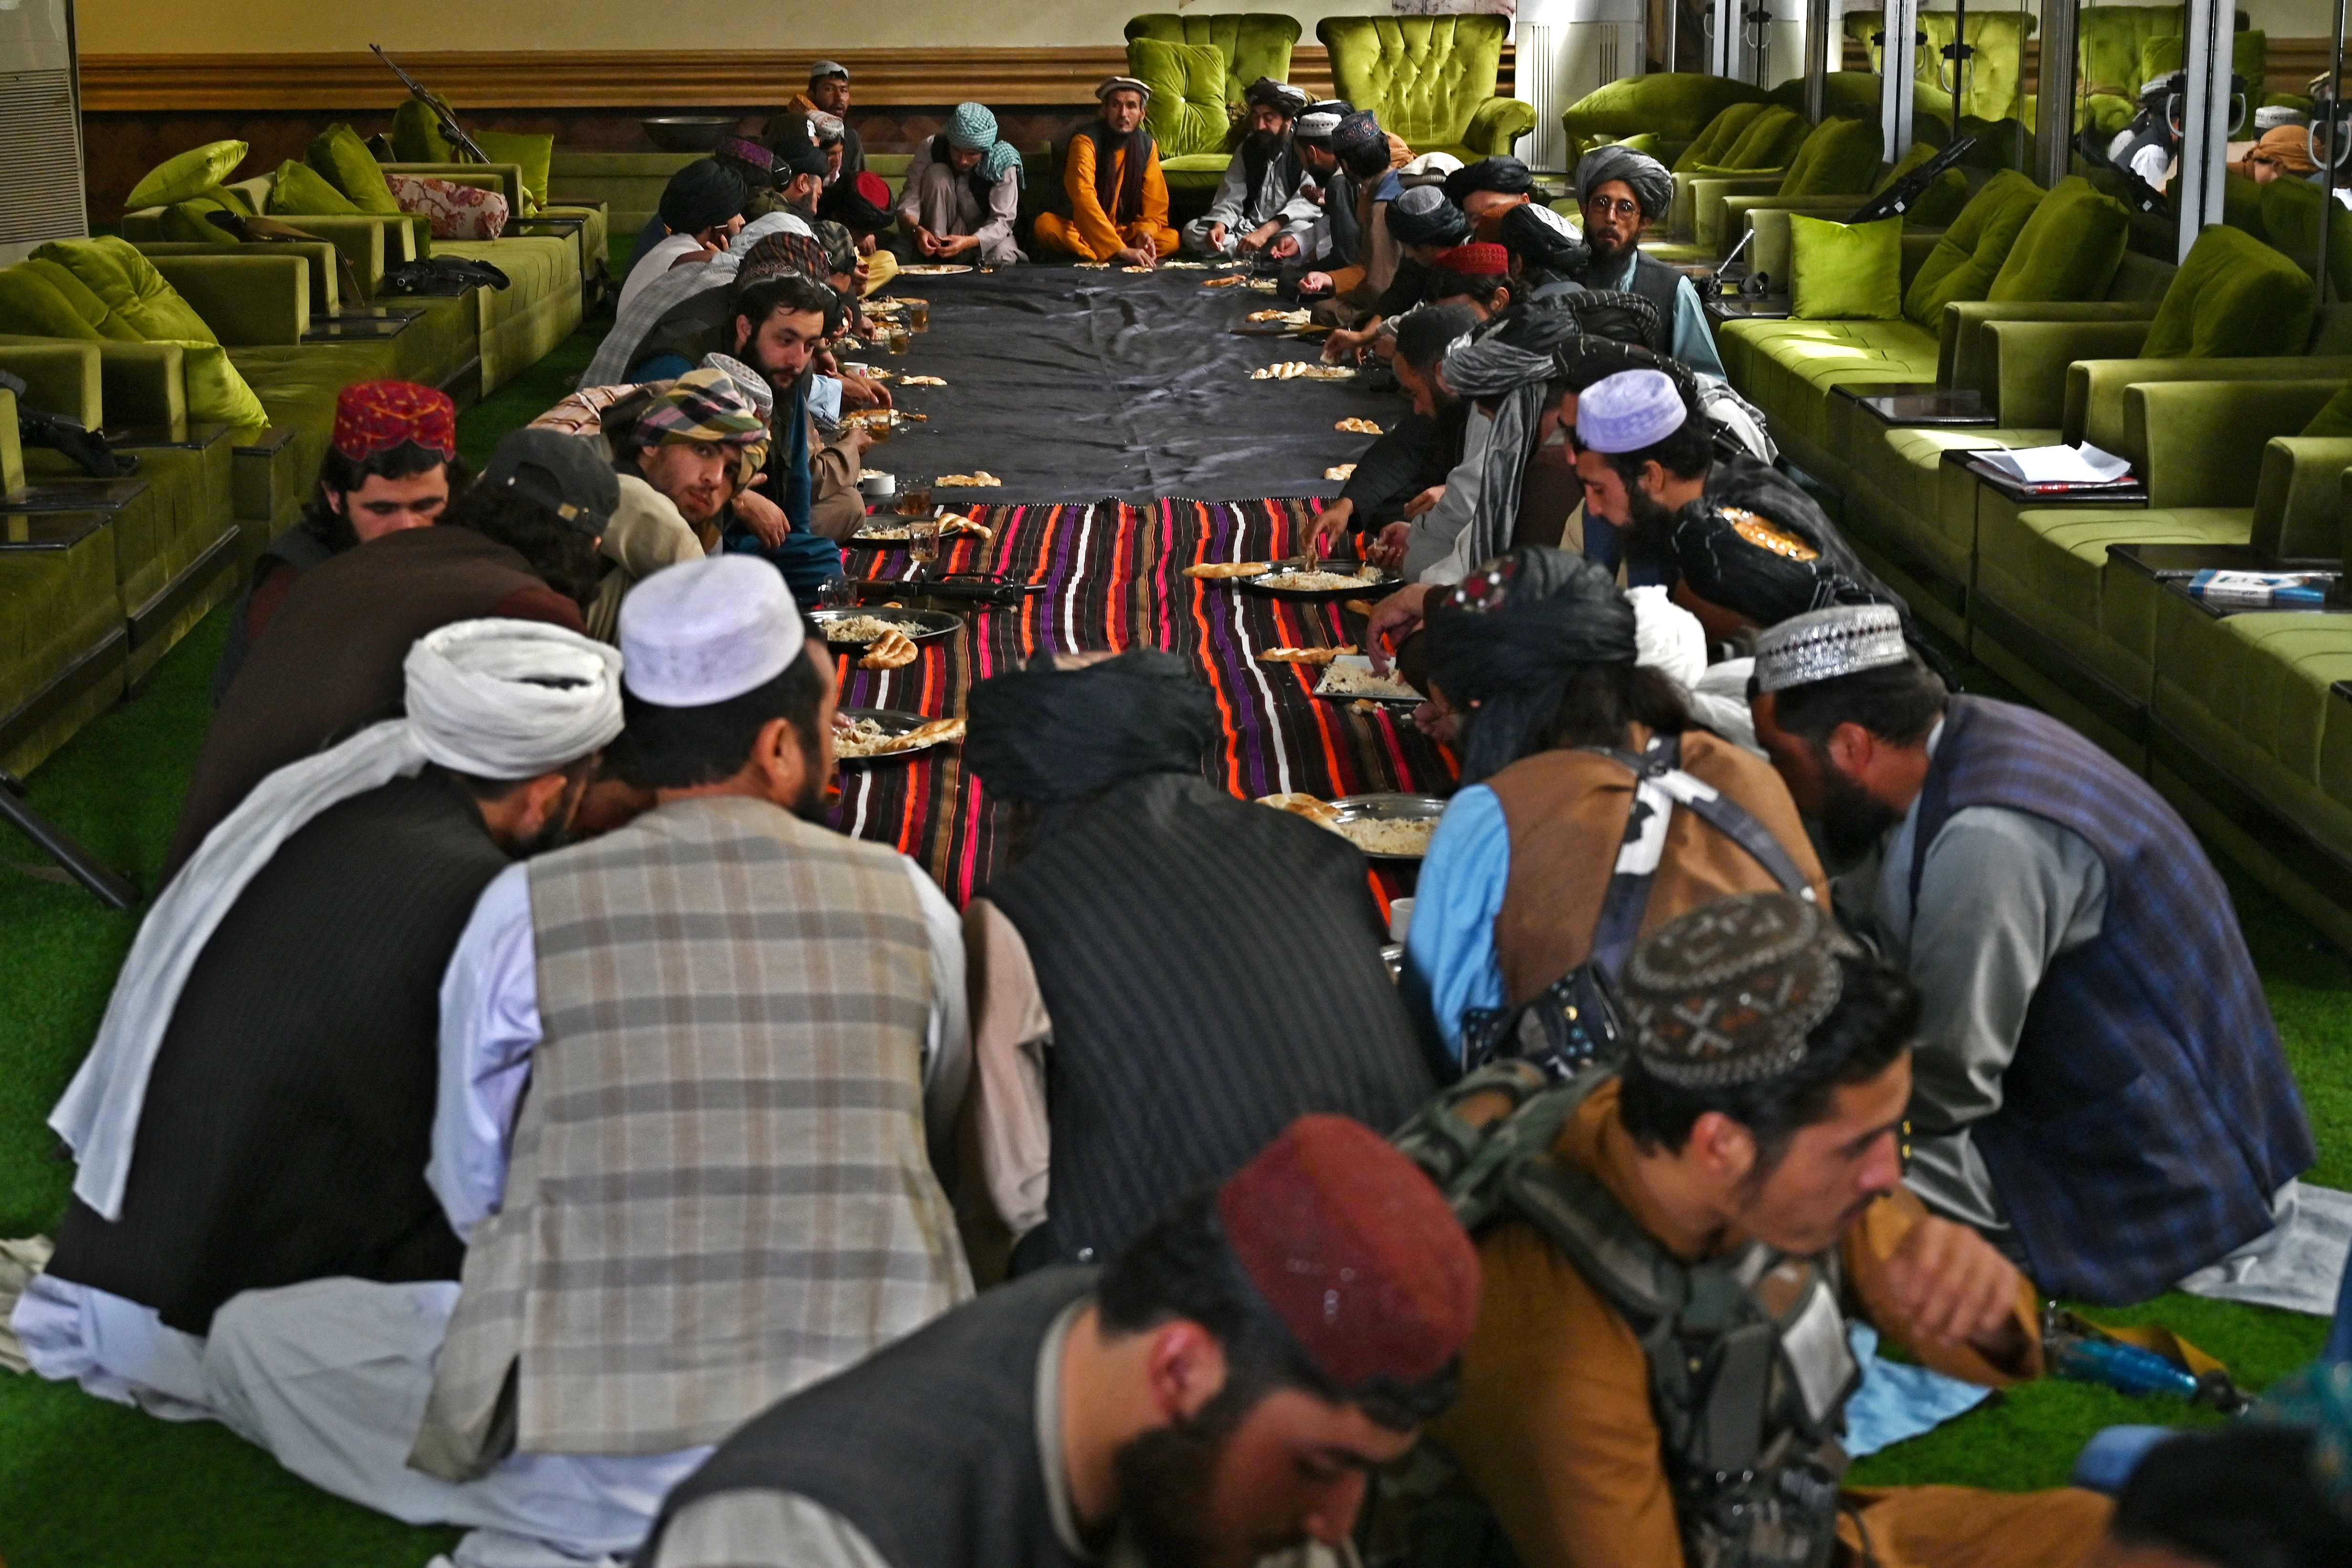 Taliban fighters have lunch at the home of Afghan warlord Abdul Rashid Dostum in Sherpur (AFP)